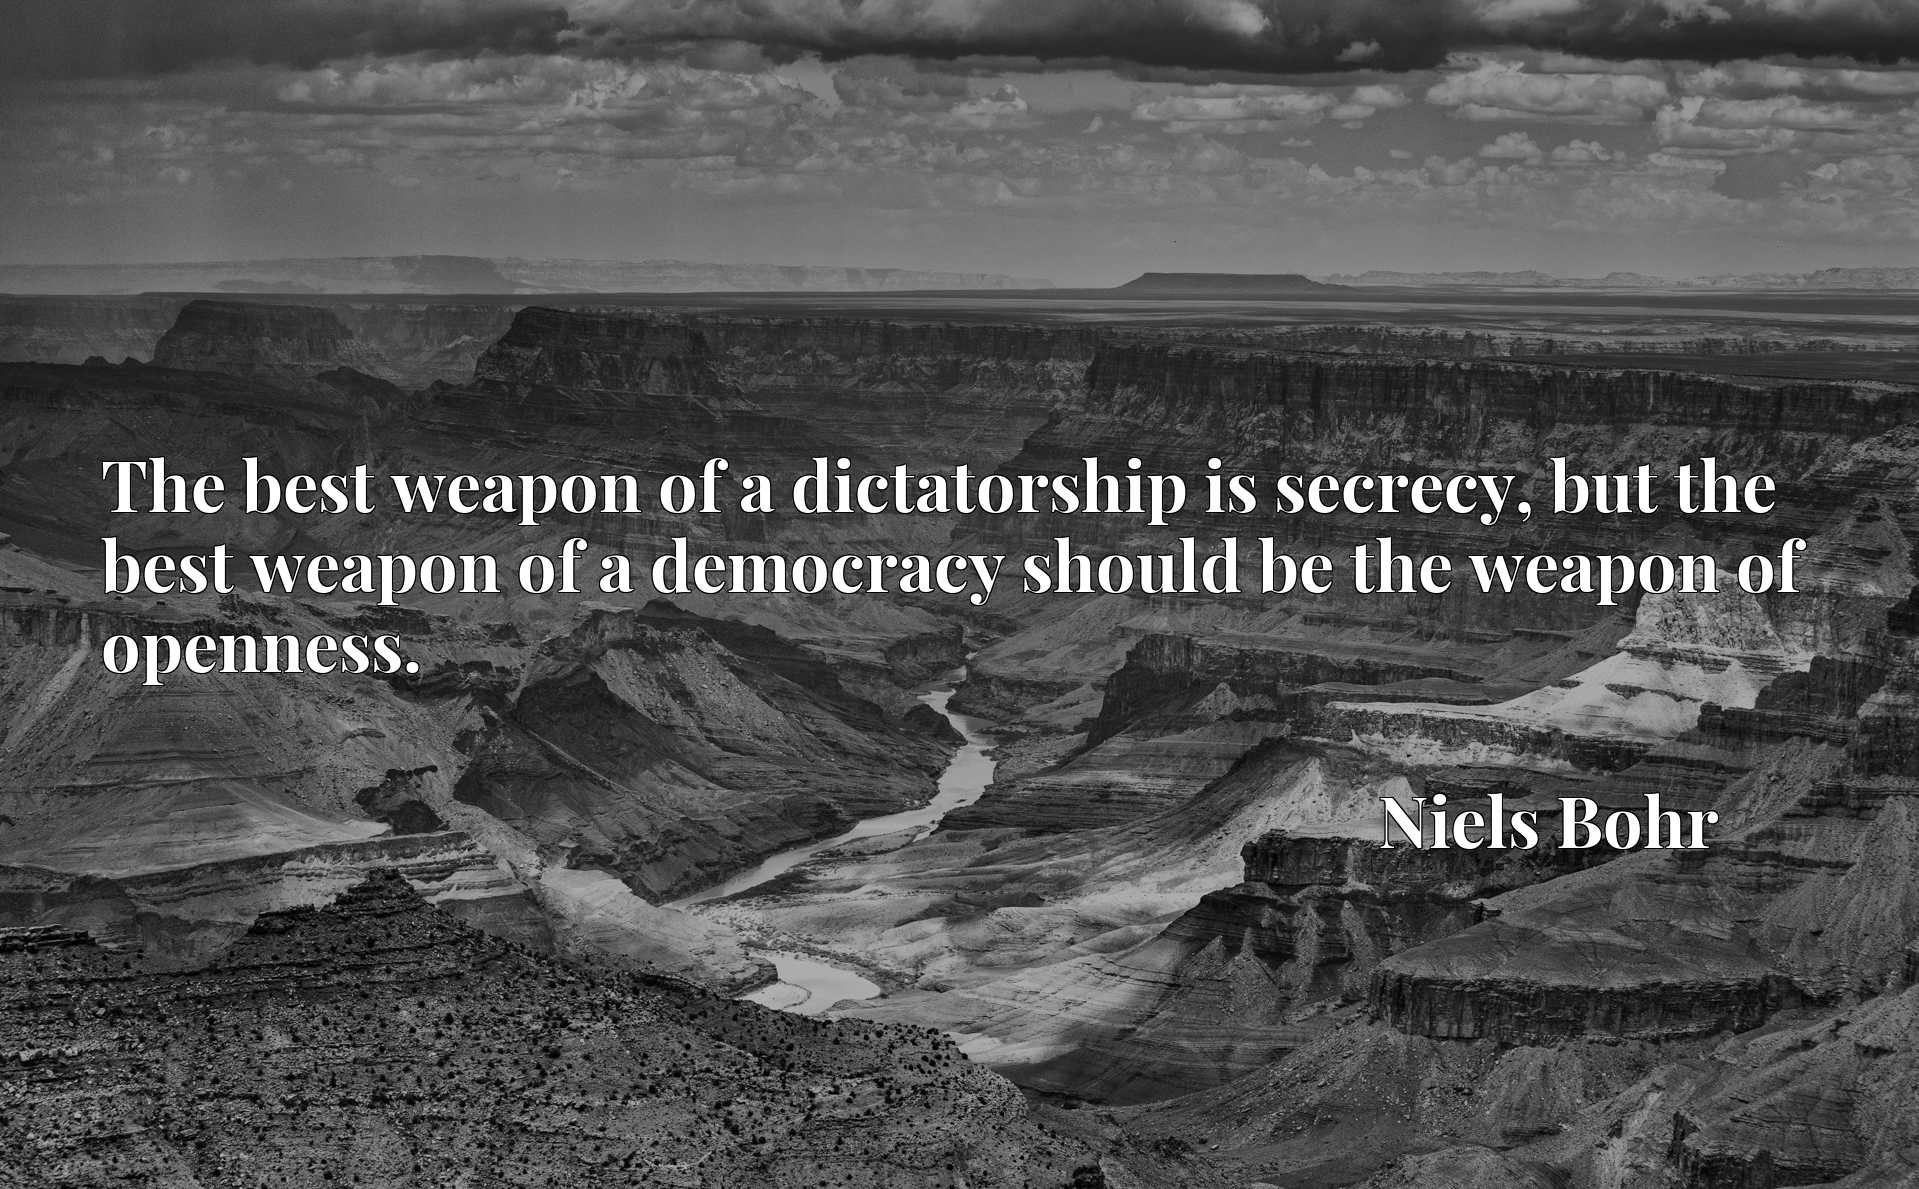 The best weapon of a dictatorship is secrecy, but the best weapon of a democracy should be the weapon of openness.